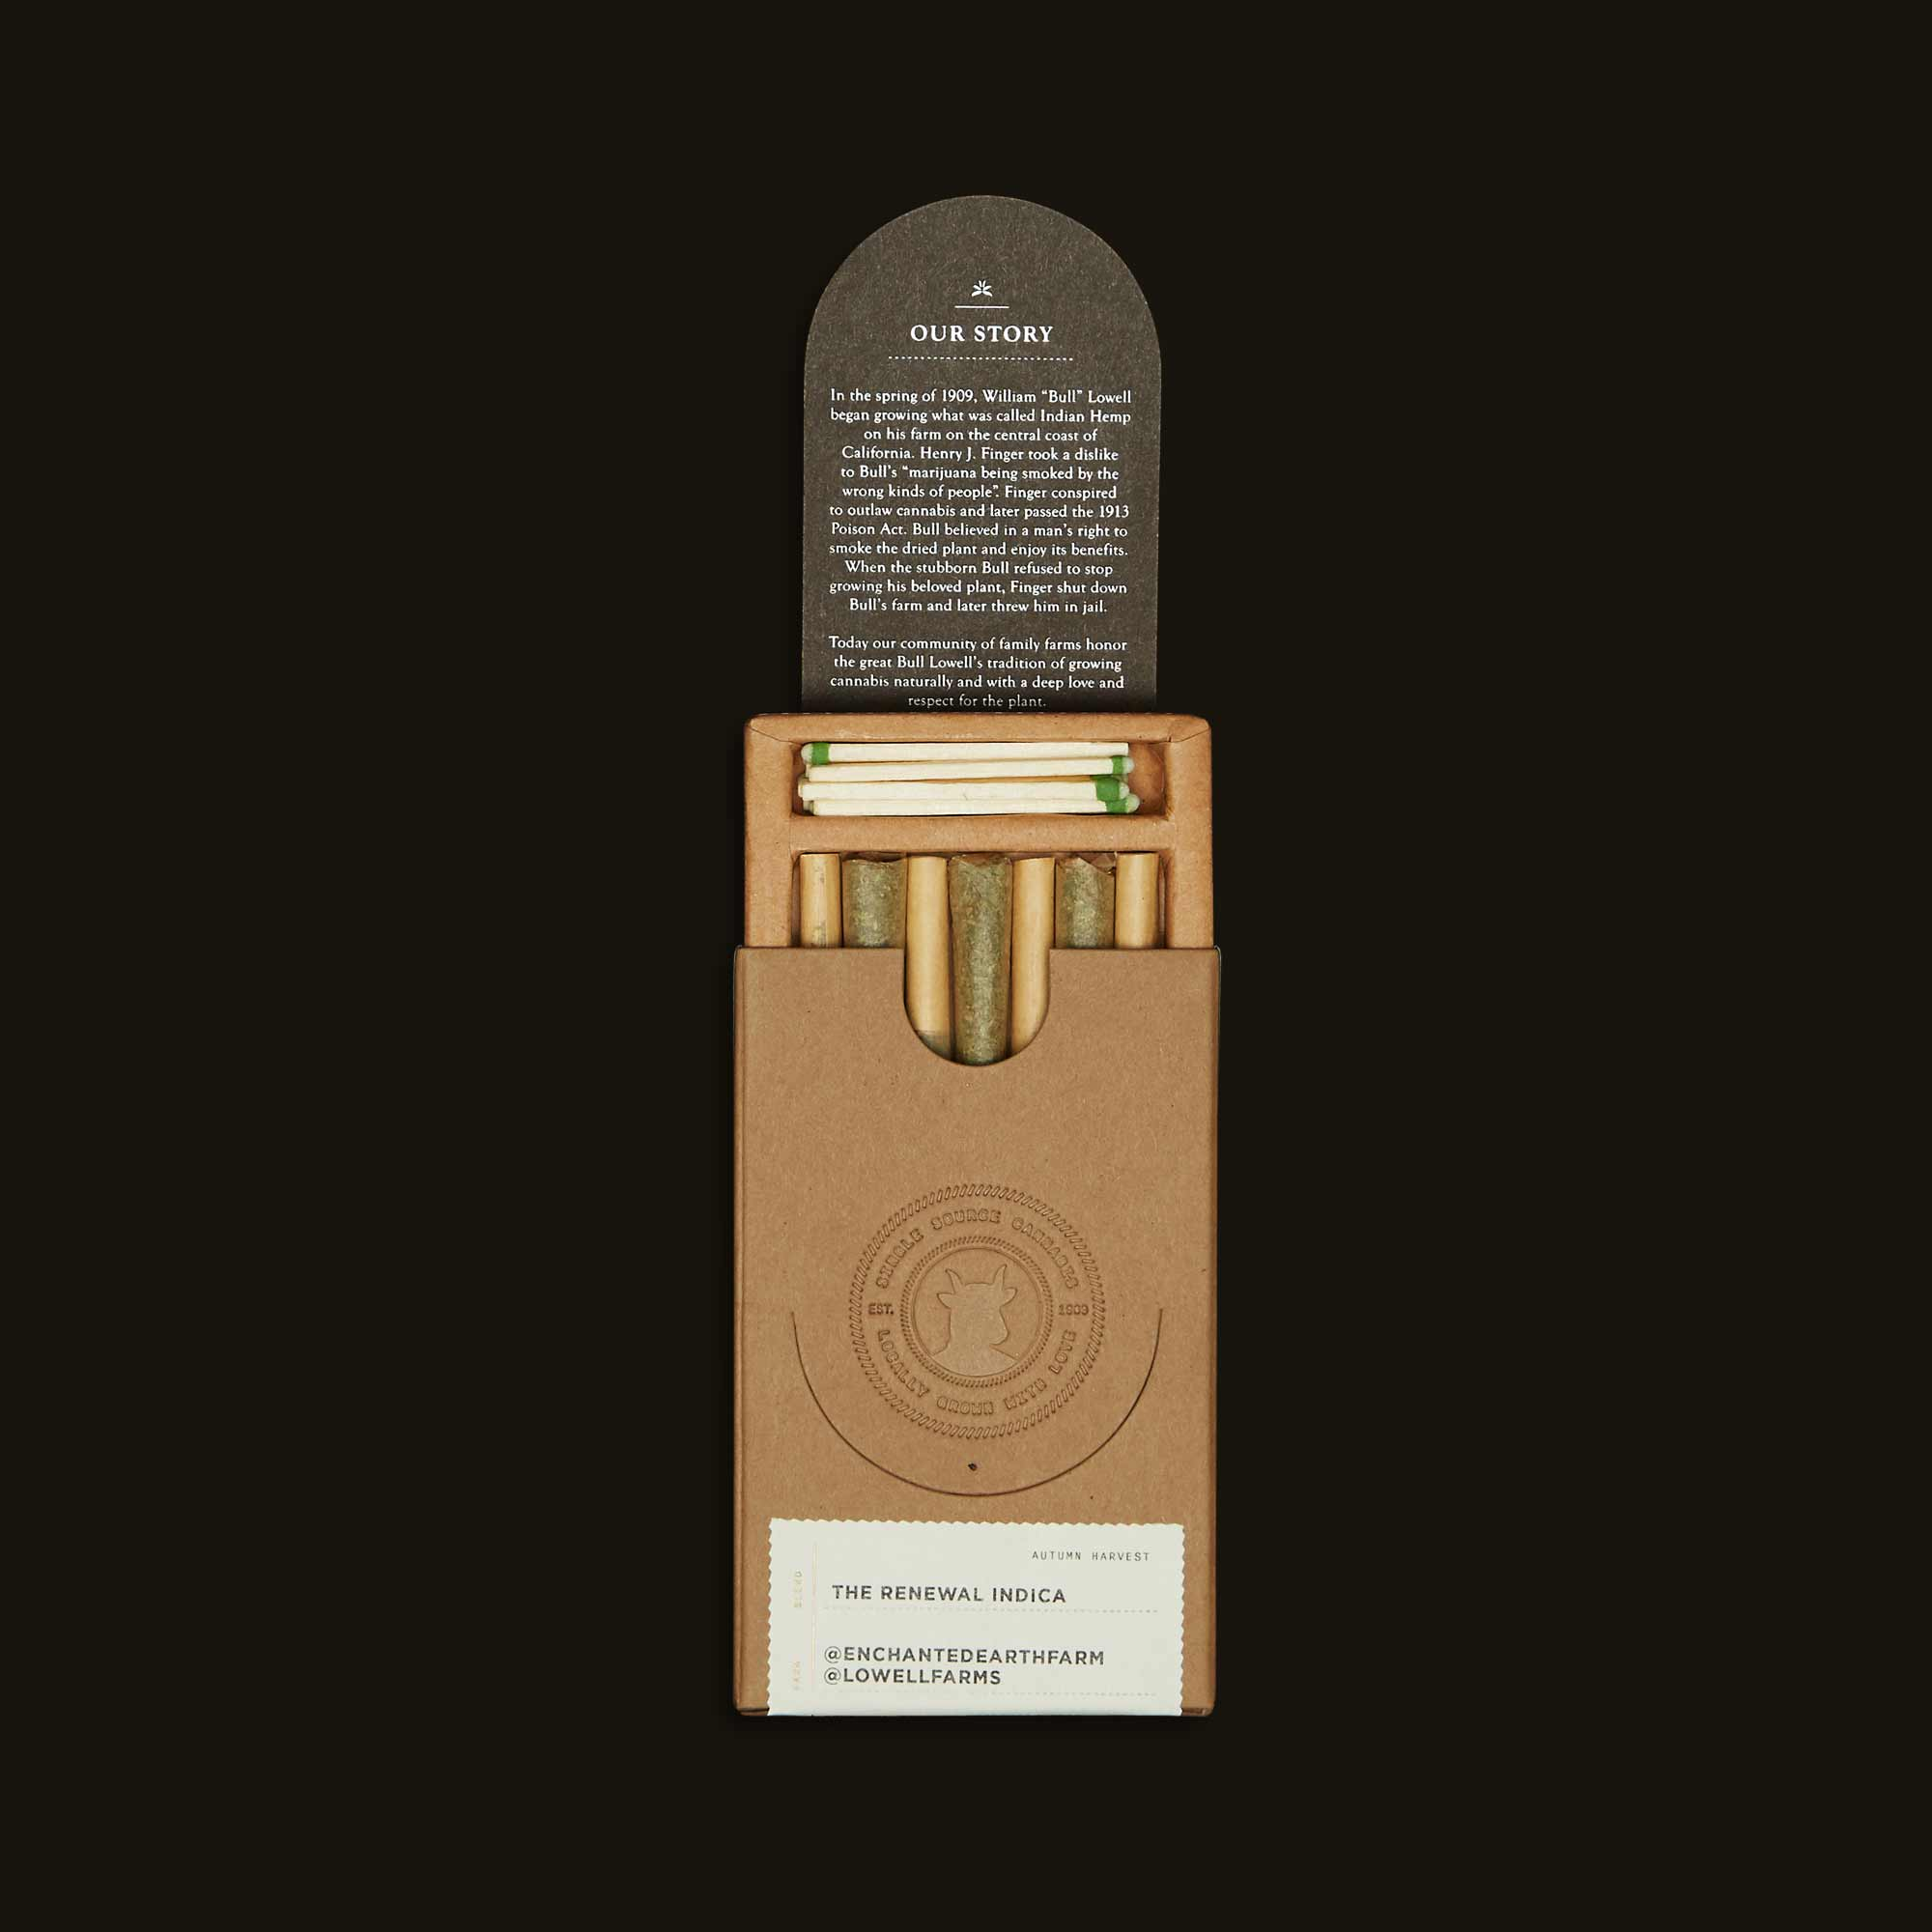 The Renewal Indica Pack - Seven 0.5g joints, Fourteen 0.5g joints